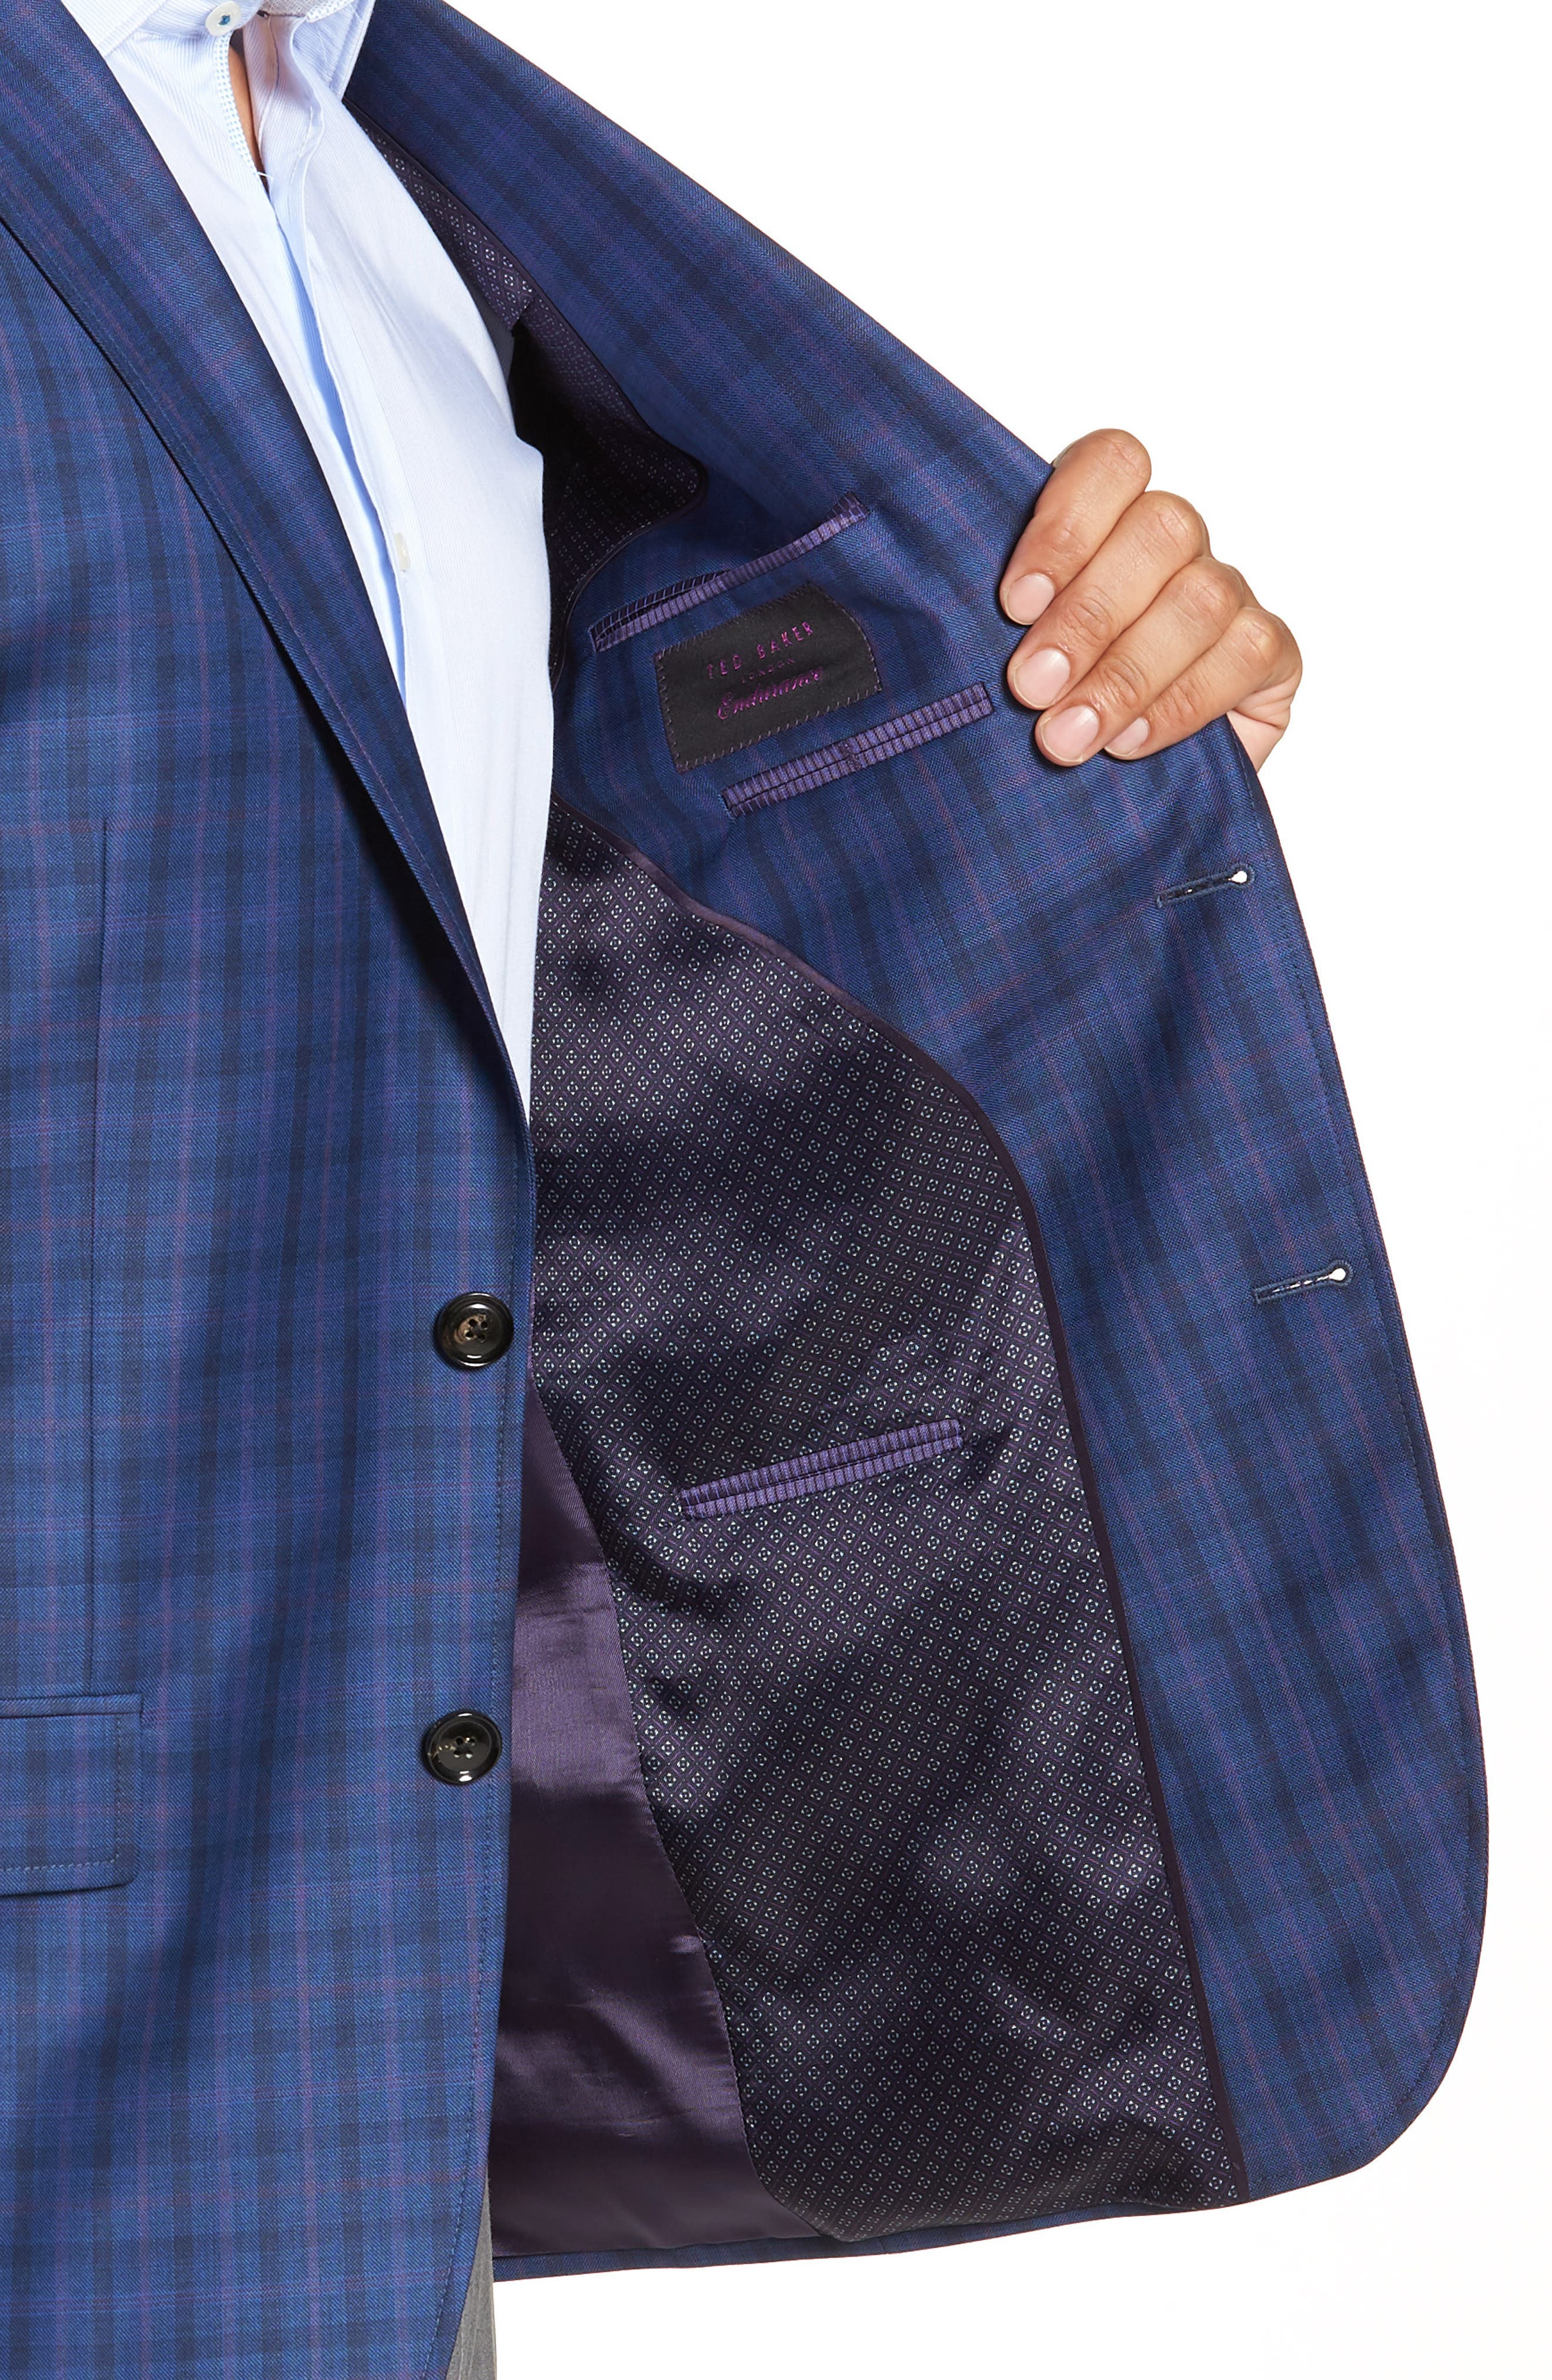 Jay Trim Fit Windowpane Wool Sport Coat,                             Alternate thumbnail 4, color,                             400